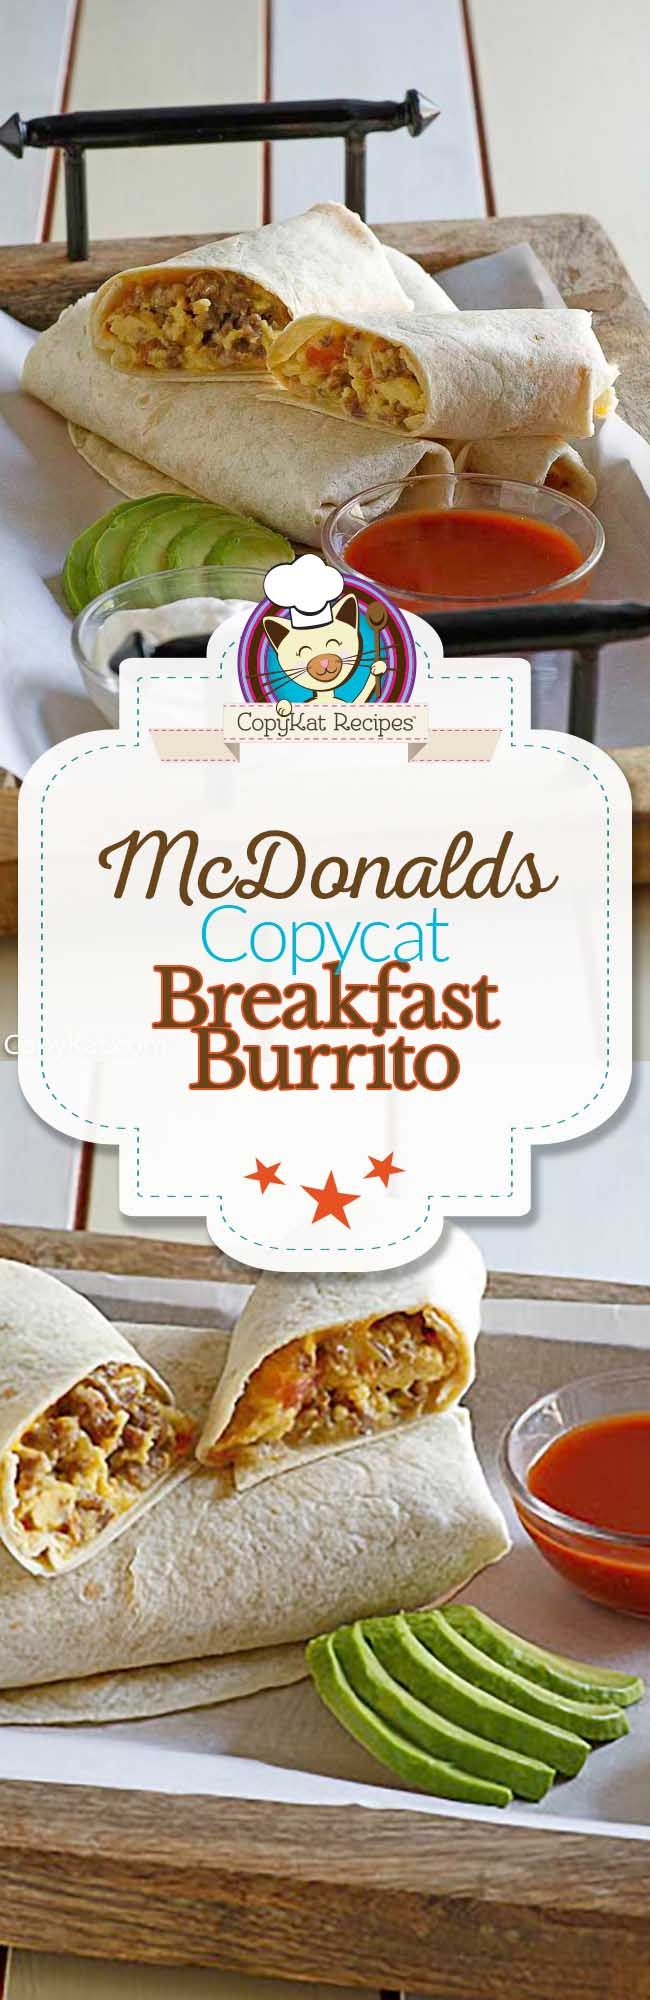 You can recreate the classic McDonald's Breakfast Burrito from scratch with this copycat recipe.